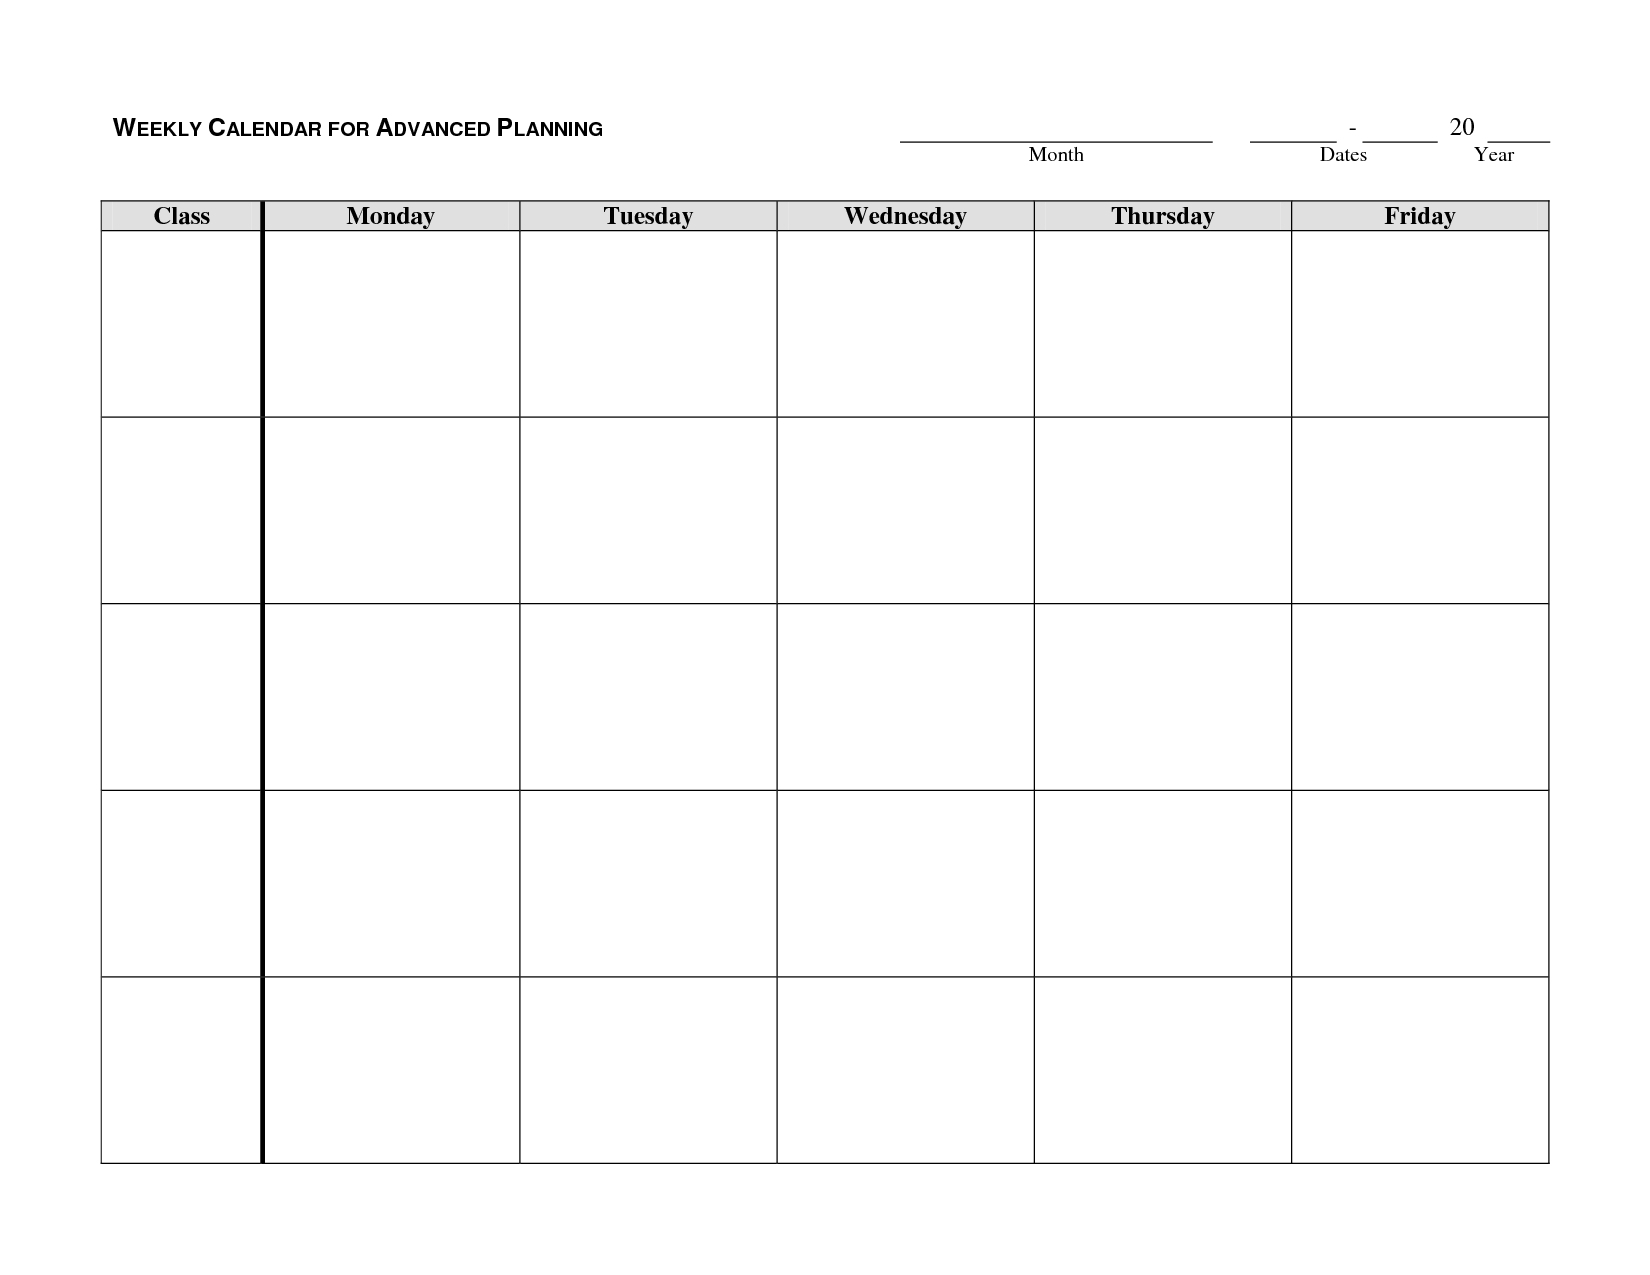 Monday Friday Calendar | Printable Calendar Templates 2019 regarding Calendar By Month Monday To Friday